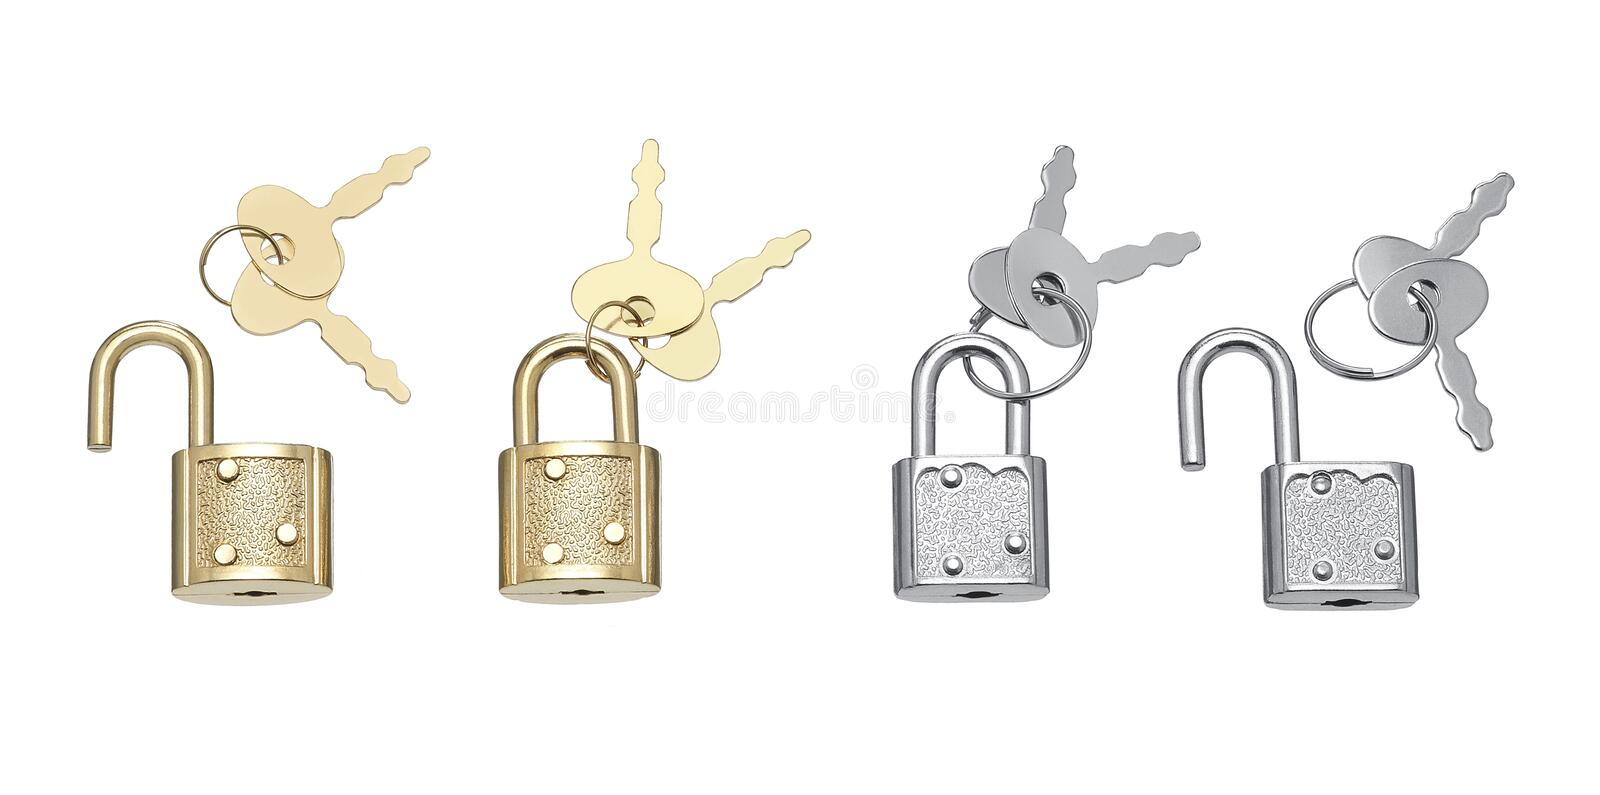 Little padlocks and keys in golden and silver color stock image